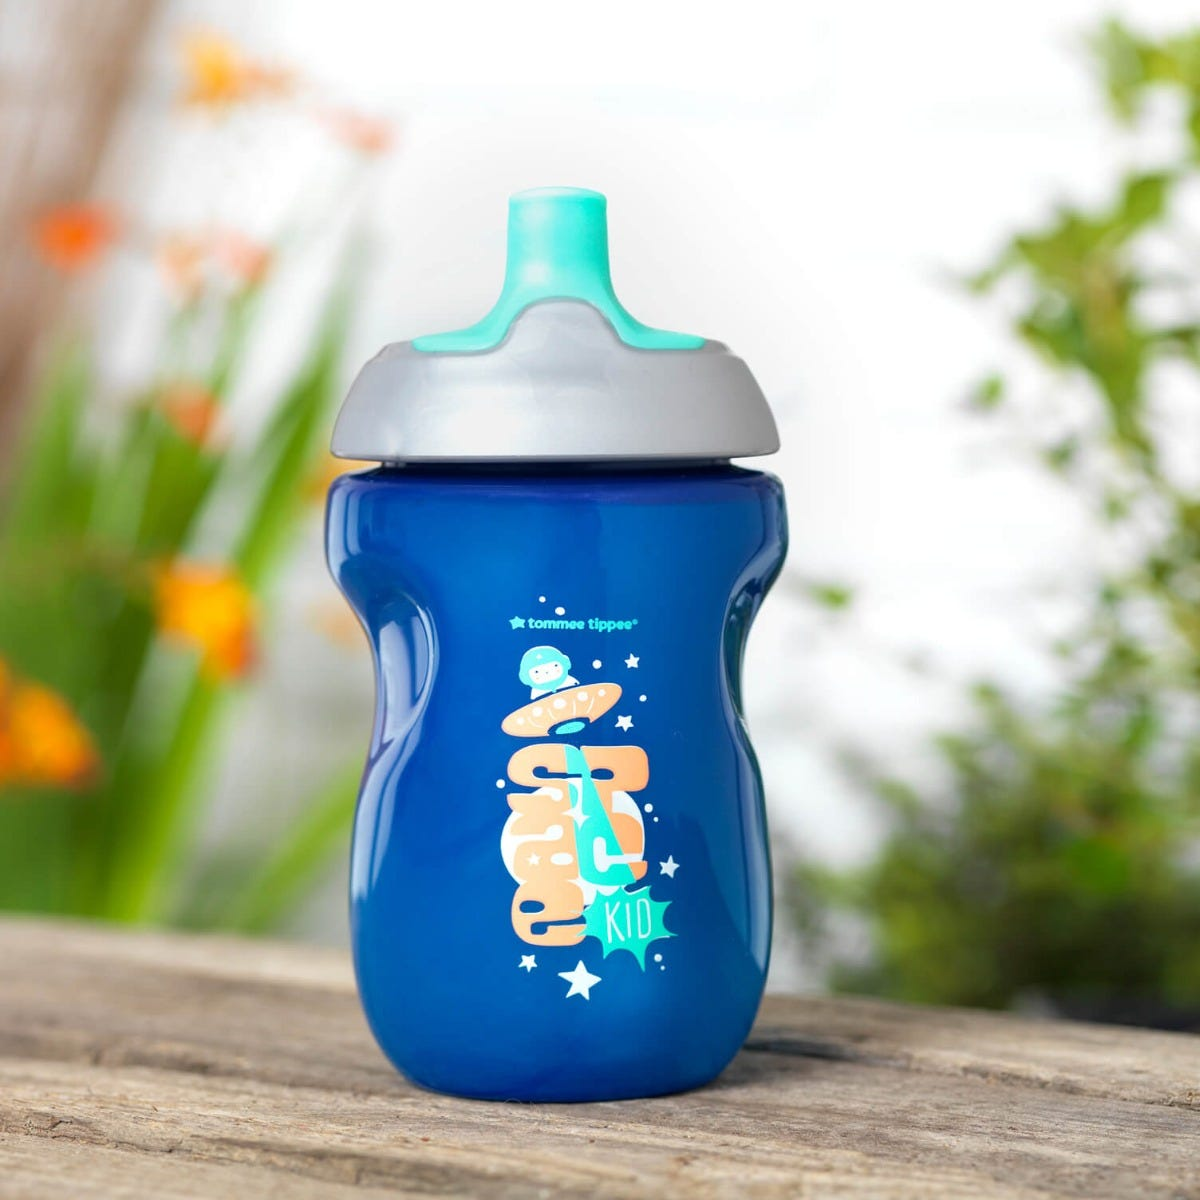 active sports bottle blue on outside bench